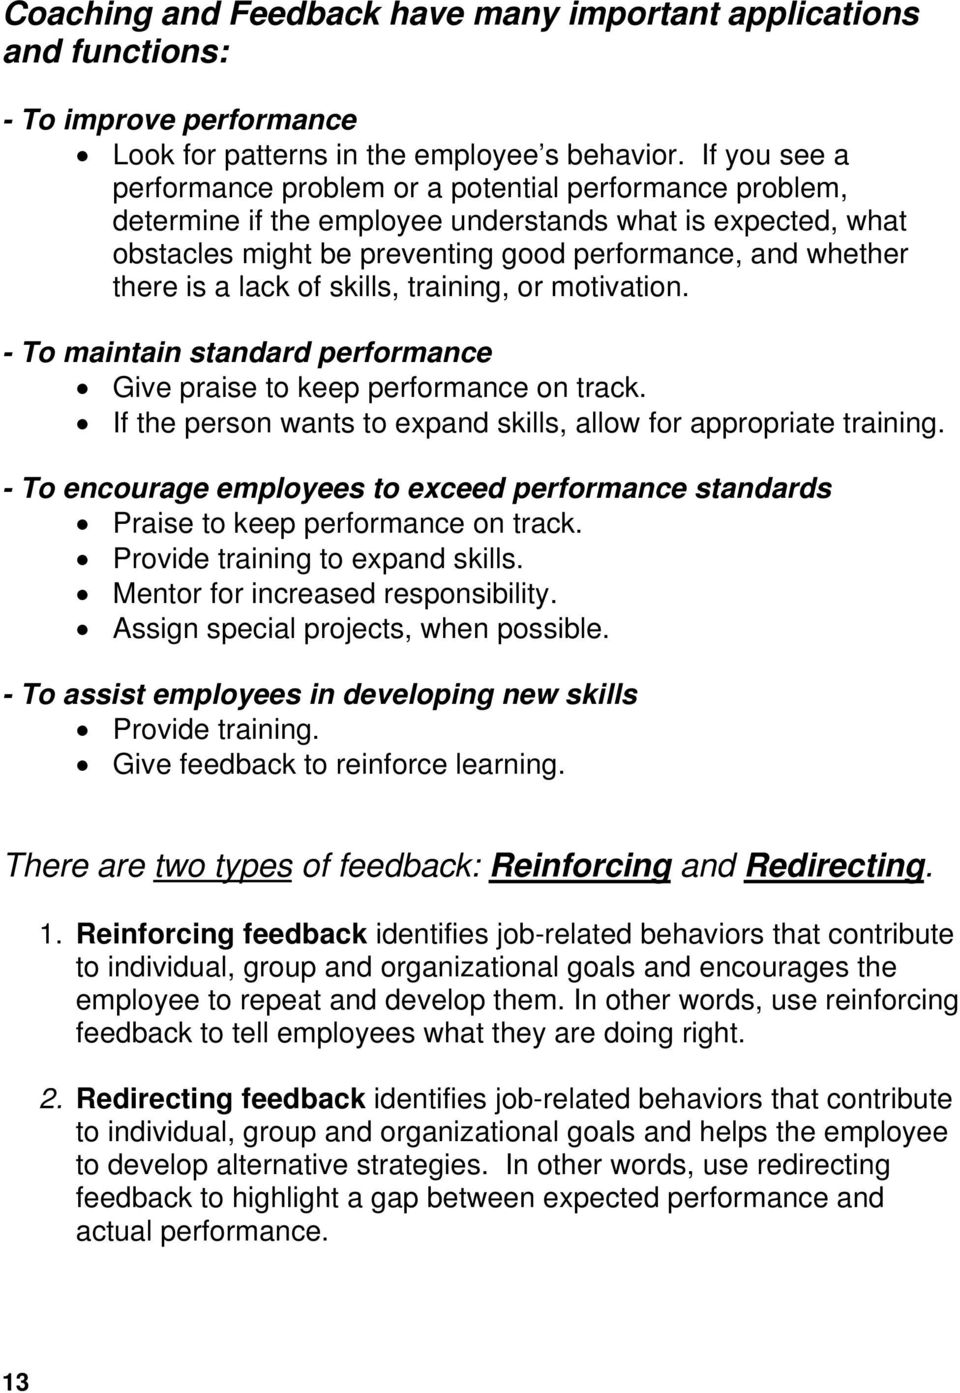 a lack of skills, training, or motivation. - To maintain standard performance Give praise to keep performance on track. If the person wants to expand skills, allow for appropriate training.